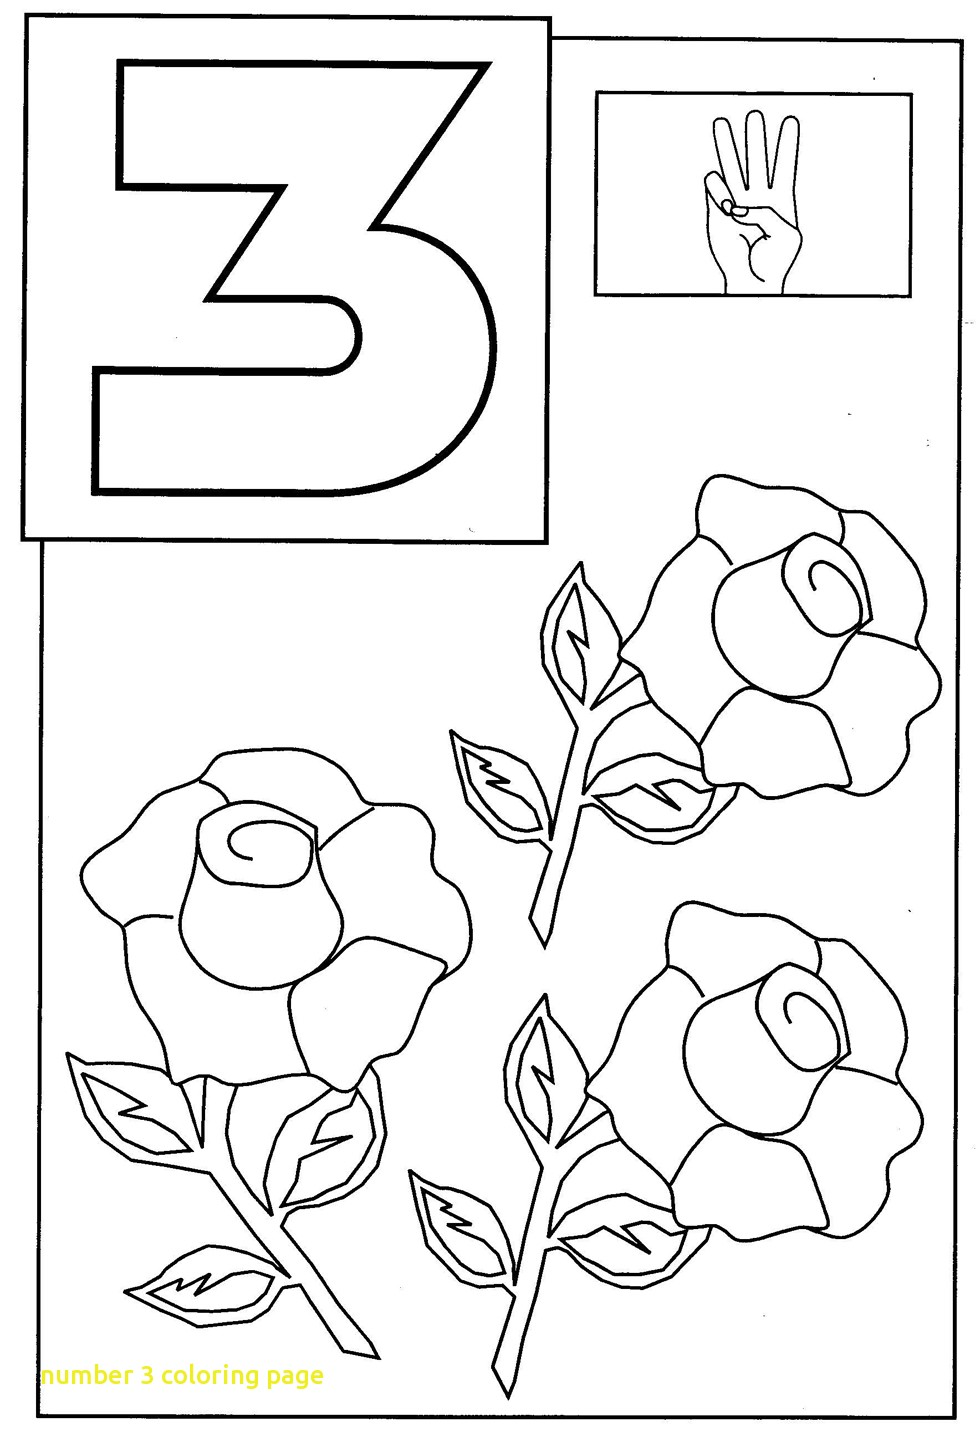 980x1432 Number Coloring Page Get Bubbles